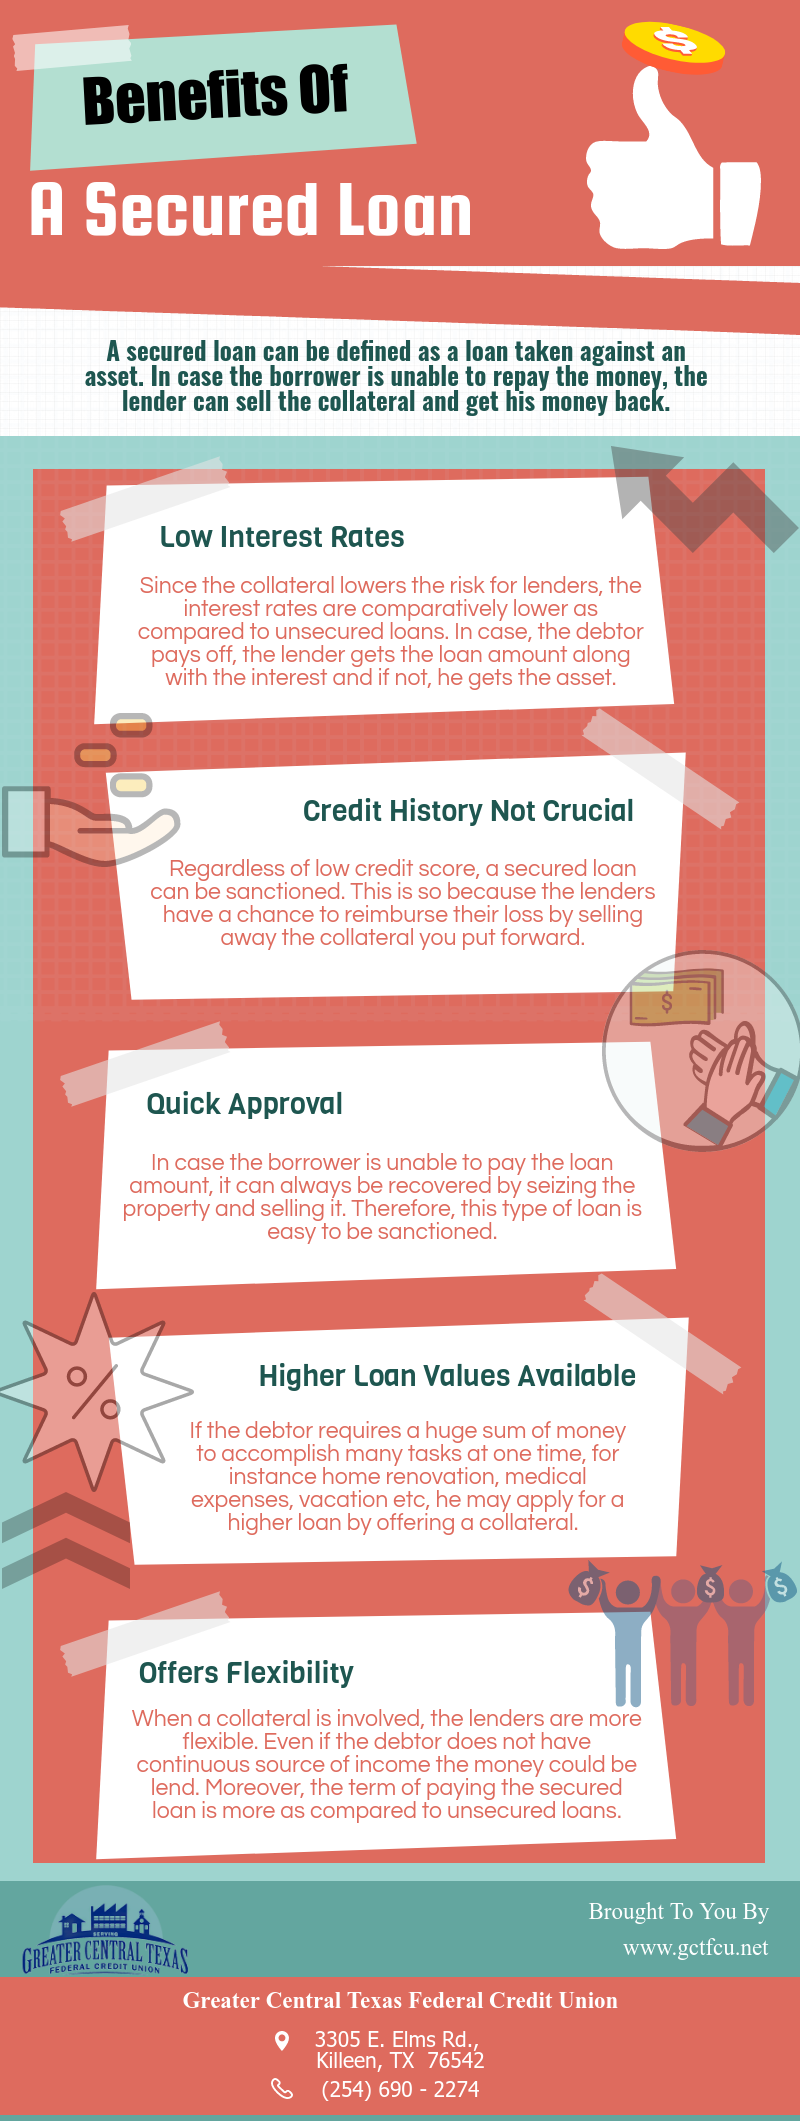 Highest payday loan interest rates photo 7